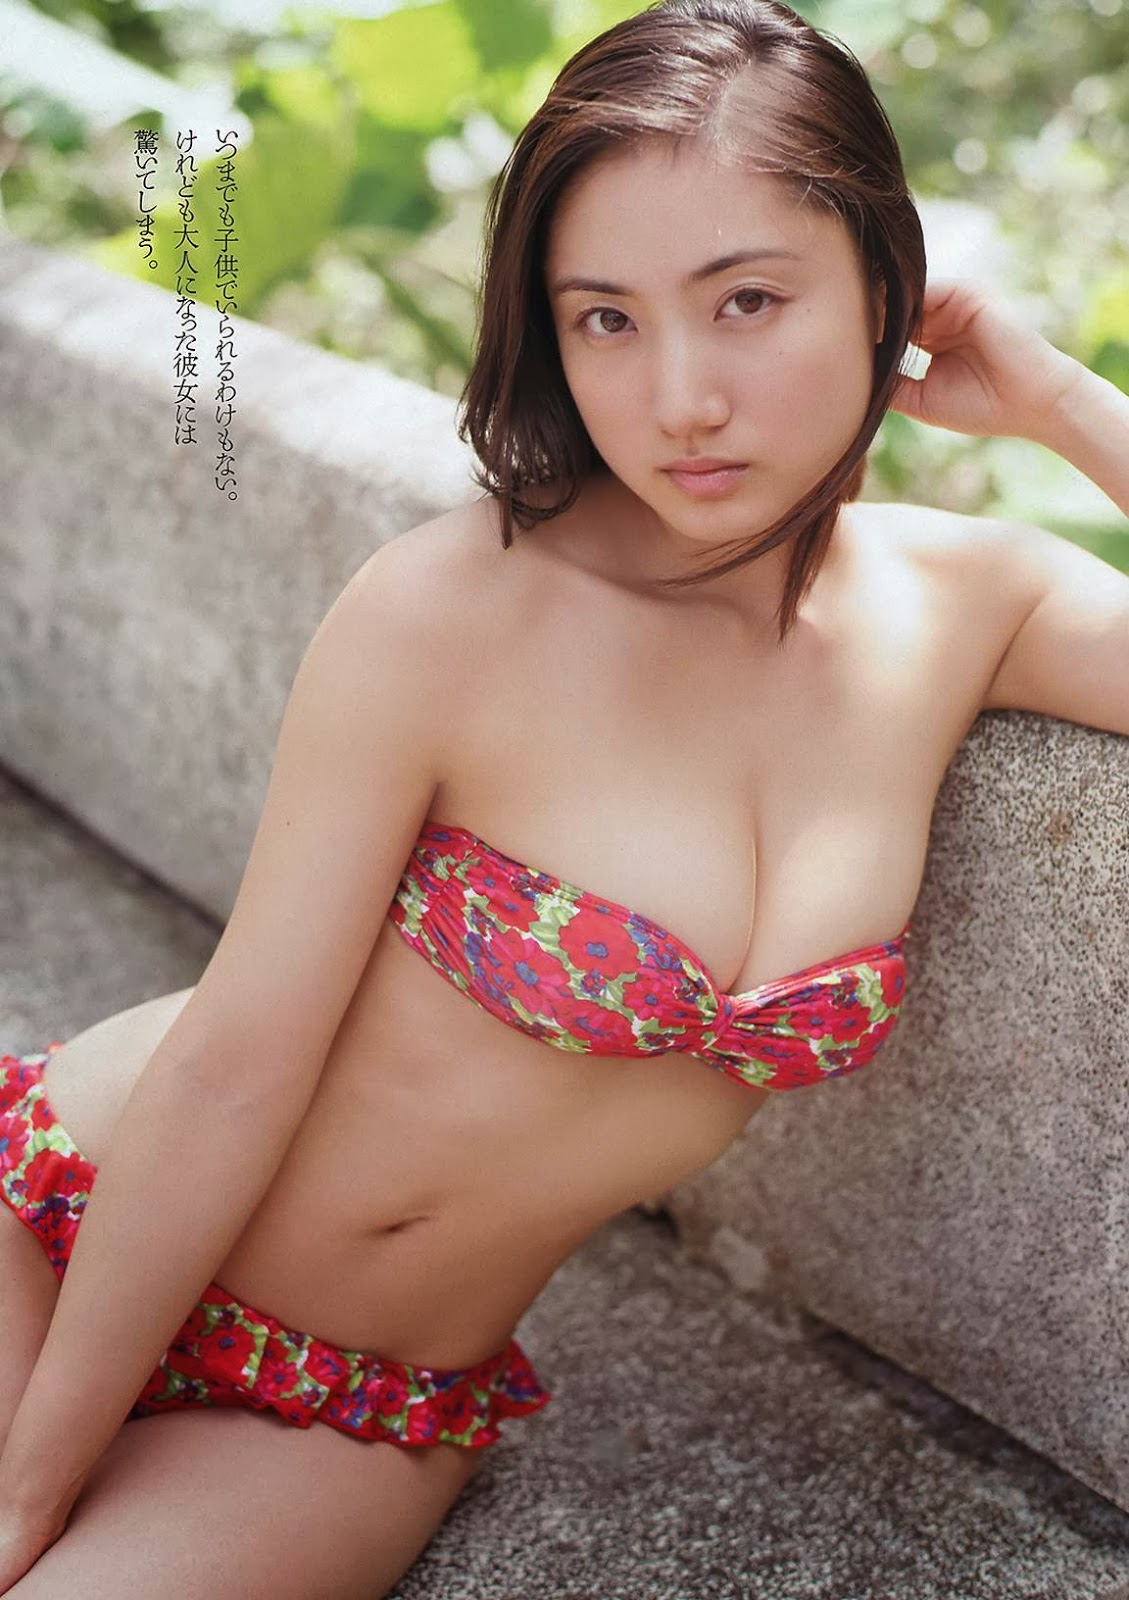 Saaya Irie 紗綾 Topless Sideboob | WPB Magazine No.49 [2013] 04